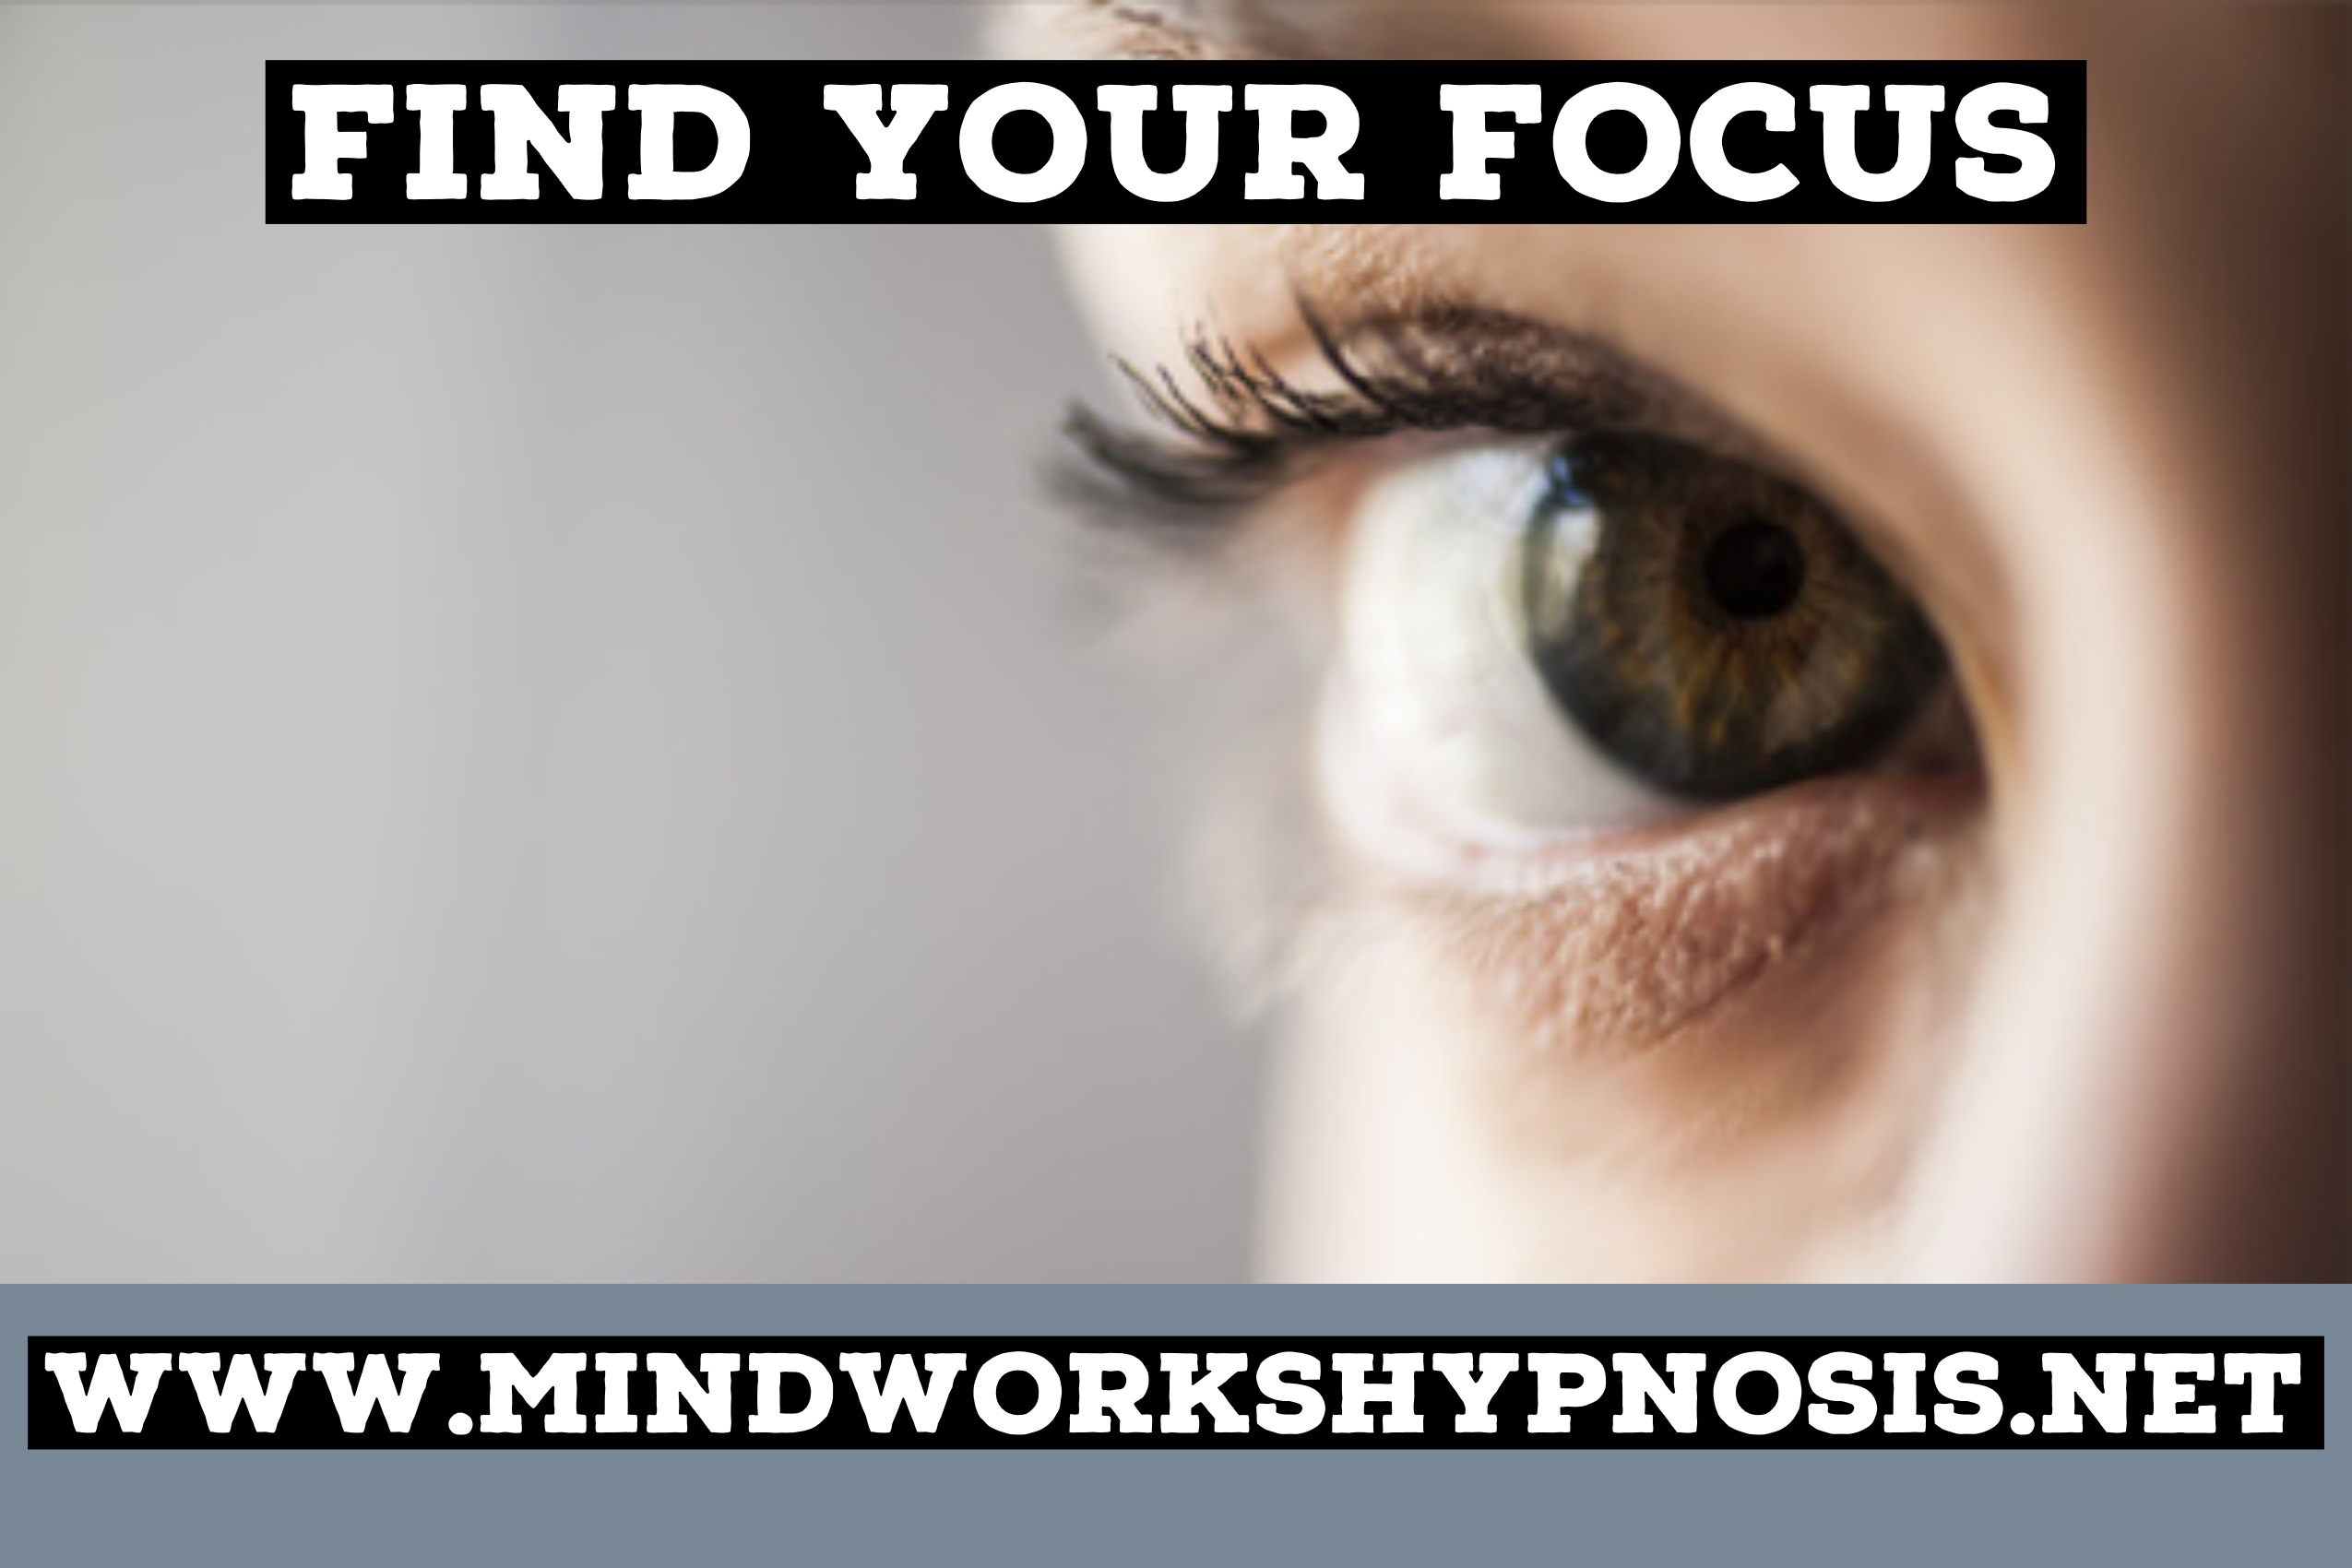 Find Your Focus with skilled hypnosis & NLP.